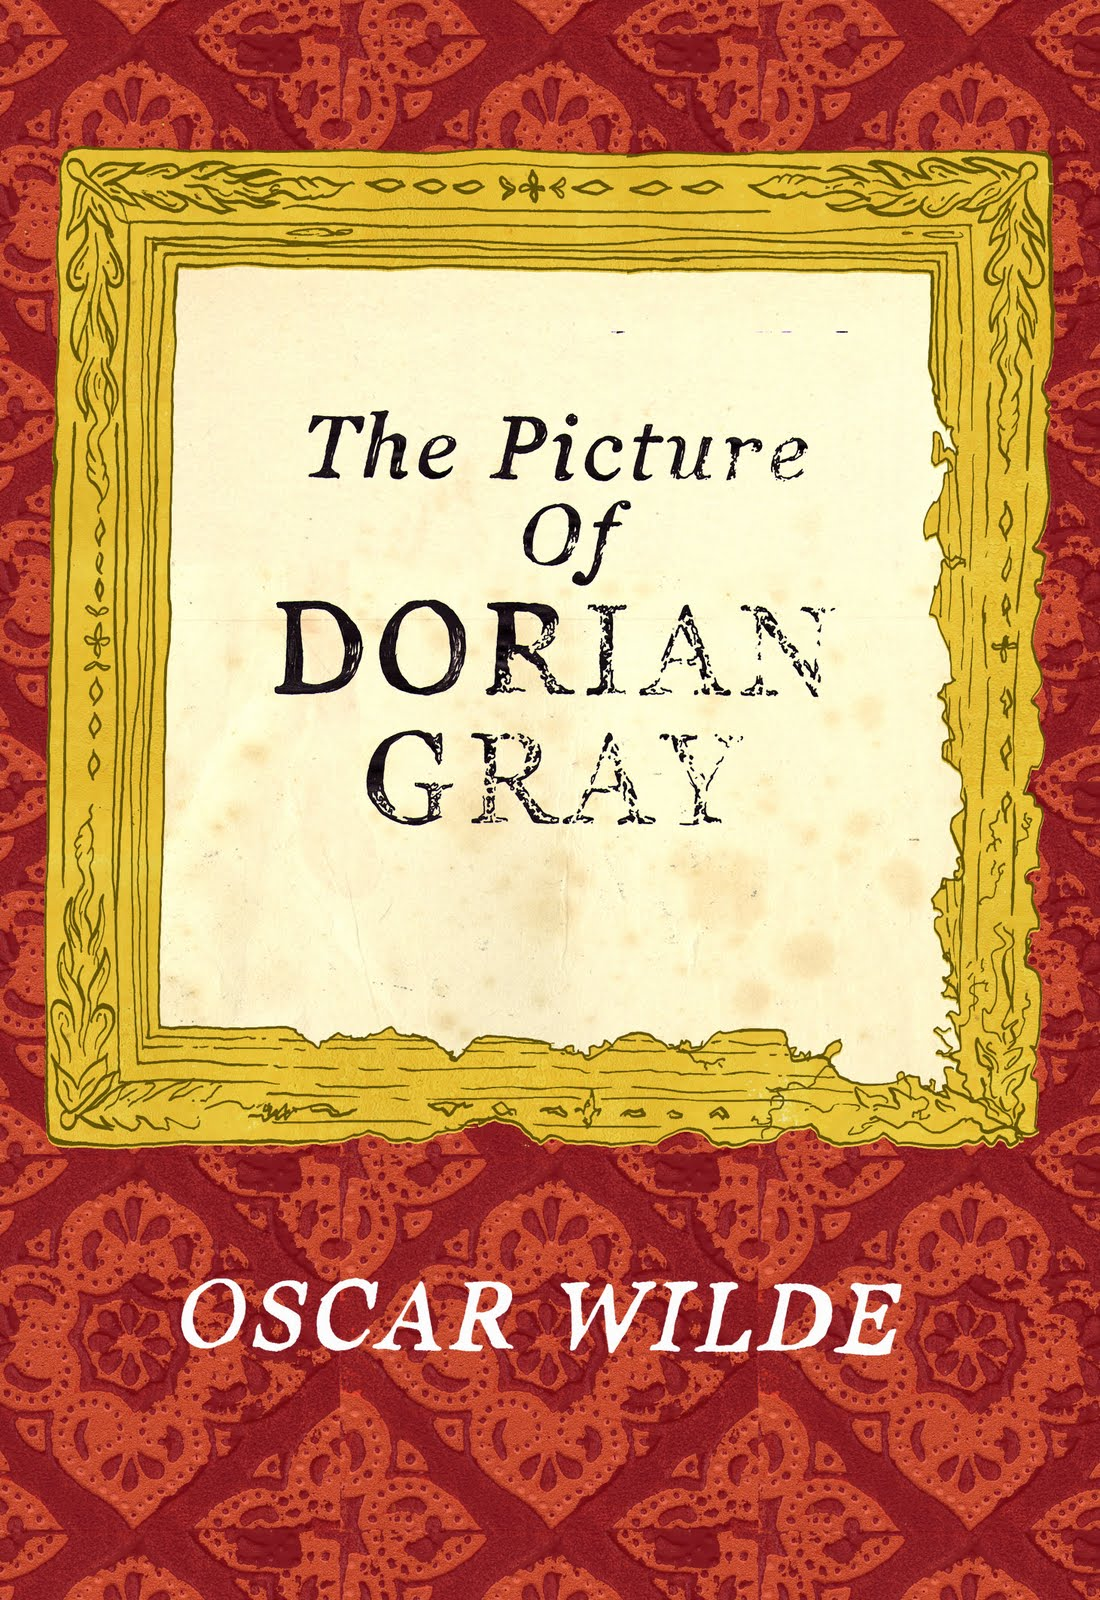 Normalising the Degenerate  Oscar Wilde s The Picture of Dorian     The picture of dorian gray essays report web fc com Home FC  The picture of dorian  gray essays report web fc com Home FC